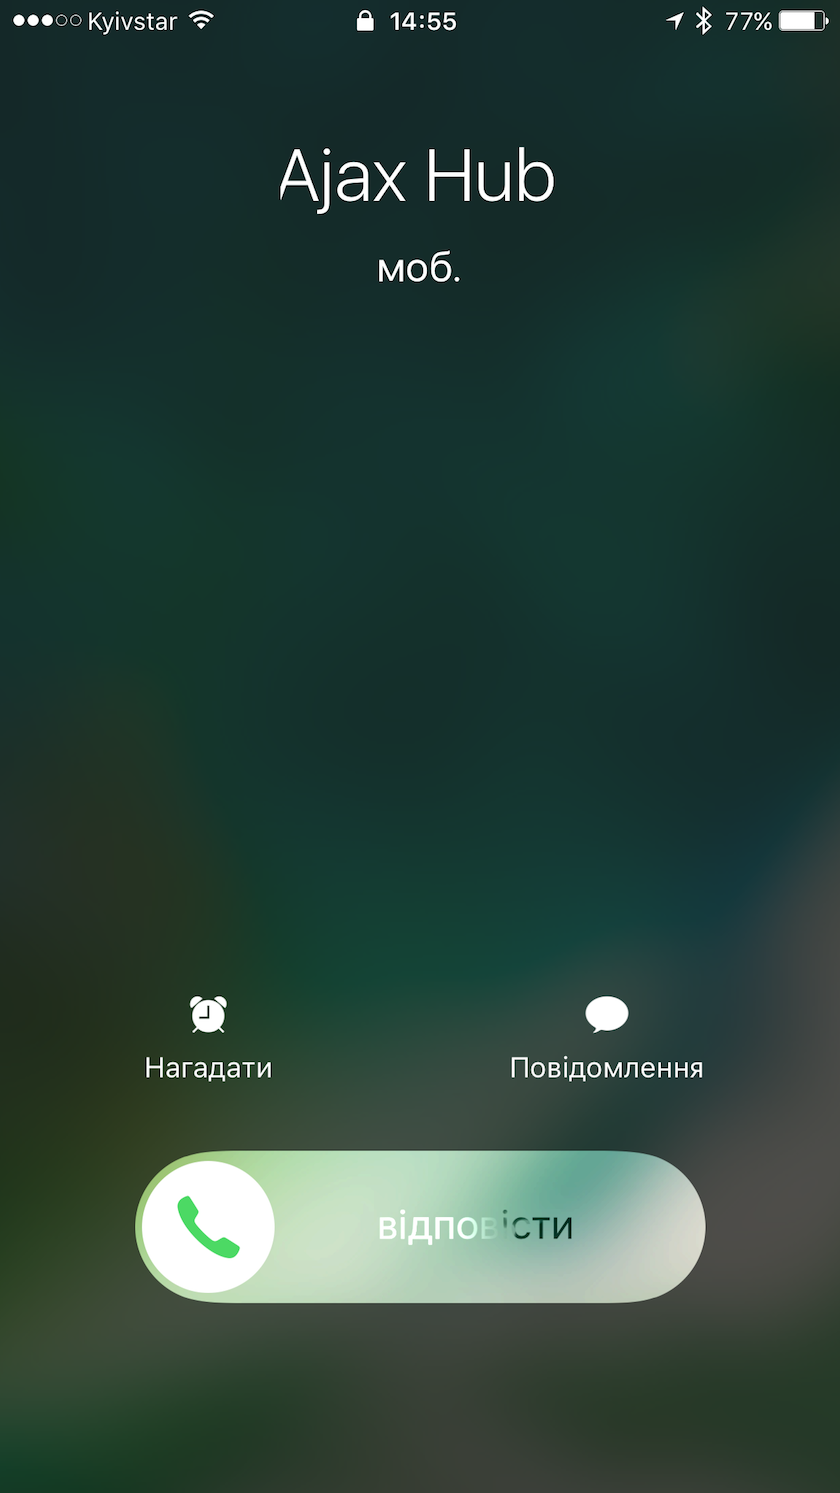 This is what phone call from Ajax Hub looks like